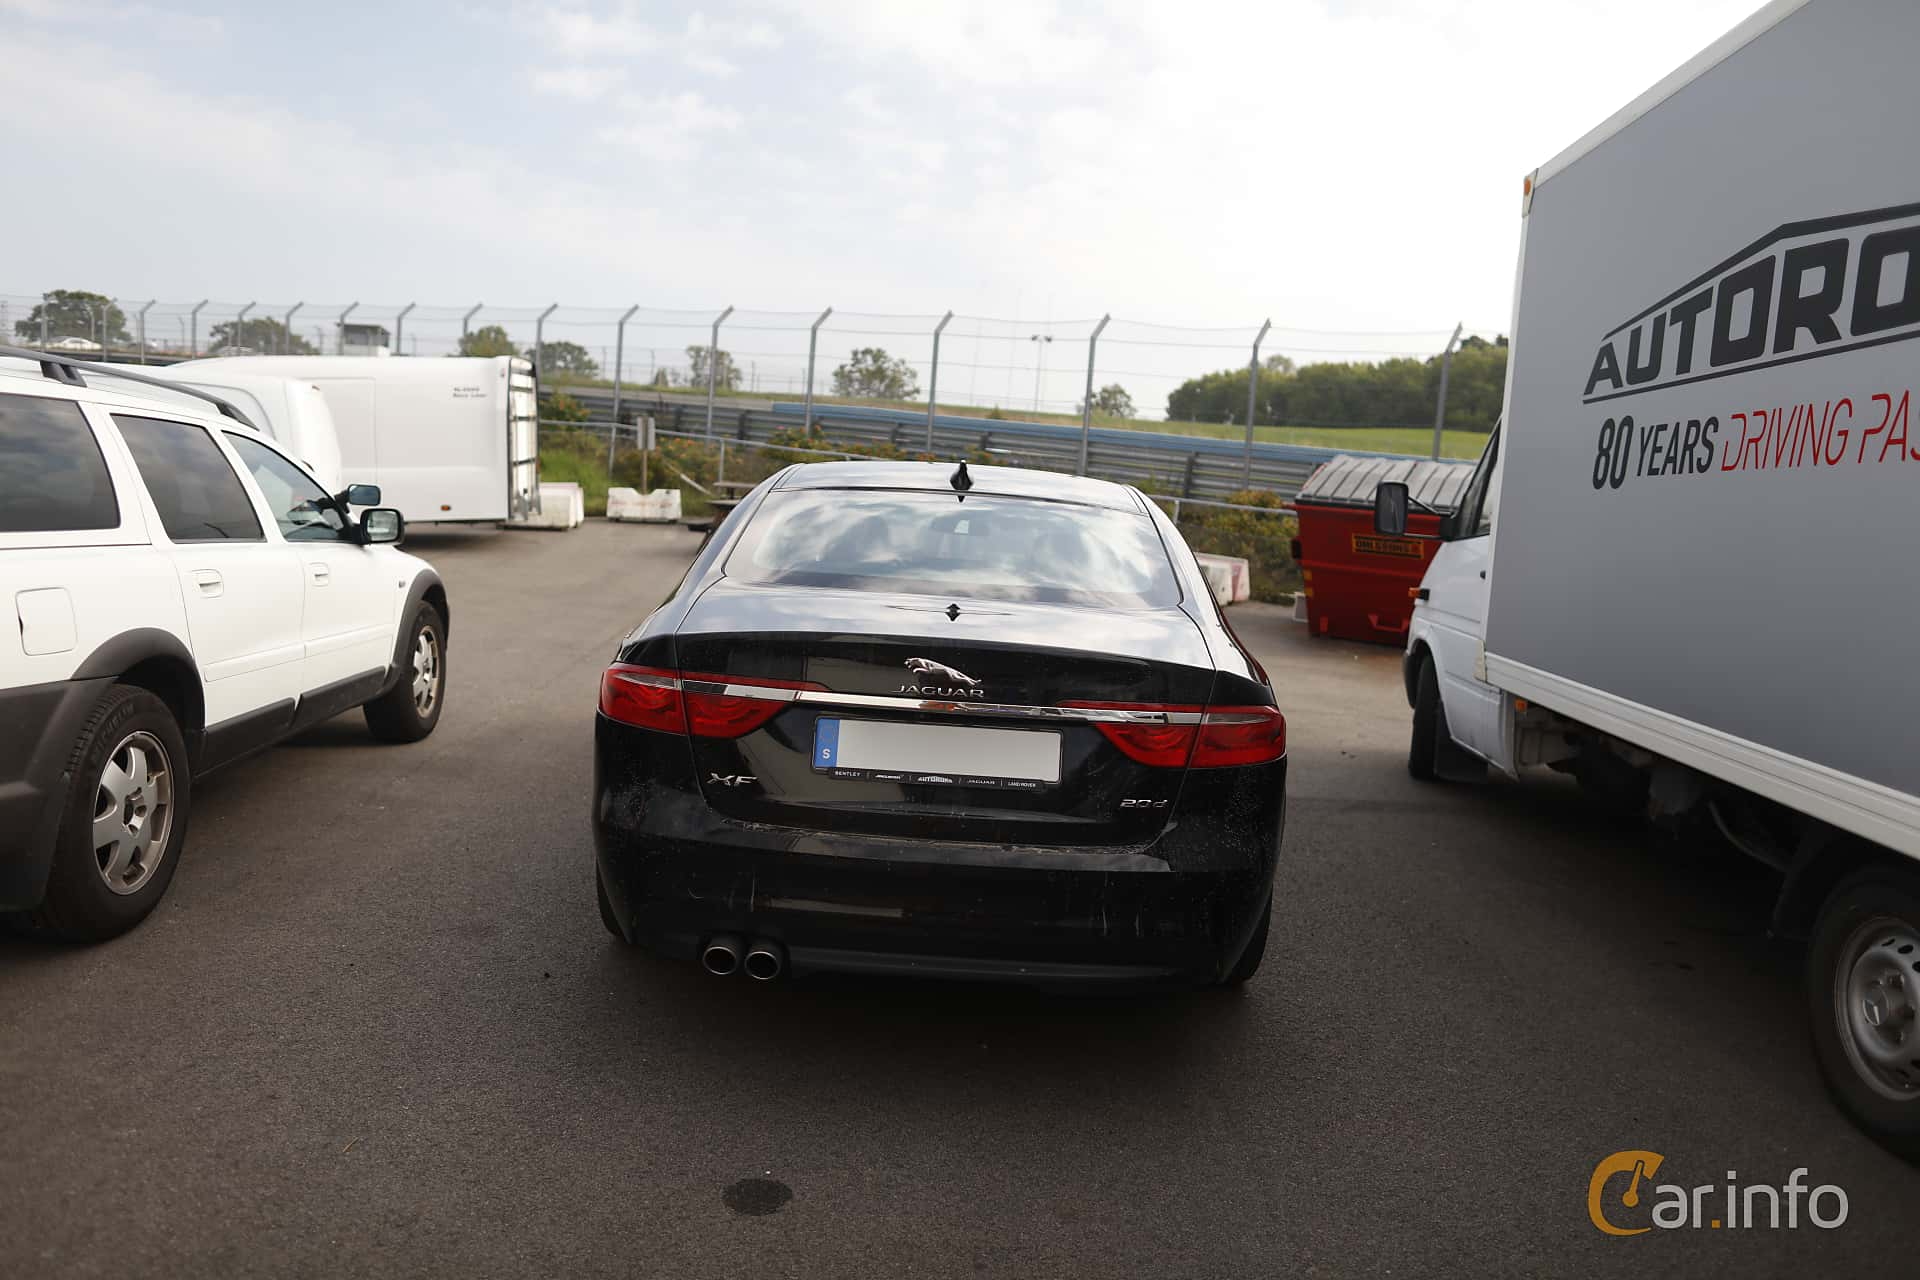 Jaguar XF 20d  Automatic, 180hp, 2016 at Autoropa Racing day Knutstorp 2019